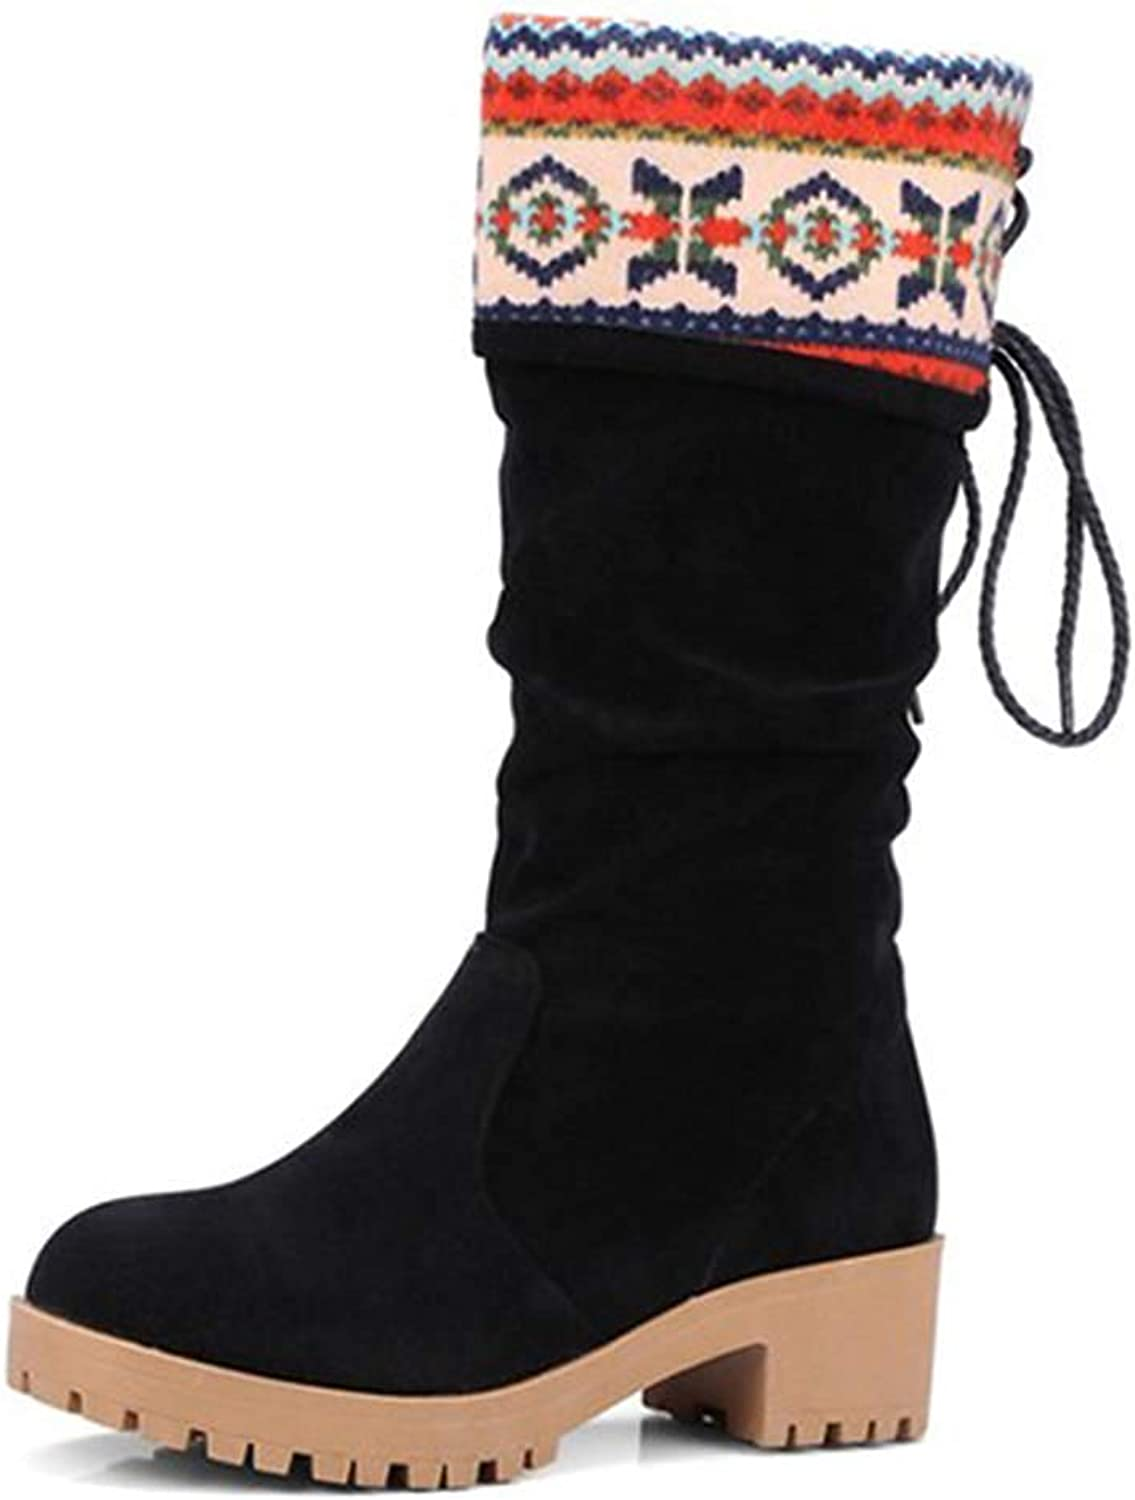 Unm Women's Vintage Embroidered Round Toe Pull On Mid Chunky Heel Ruched Platform Mid Calf Slouchy Boots